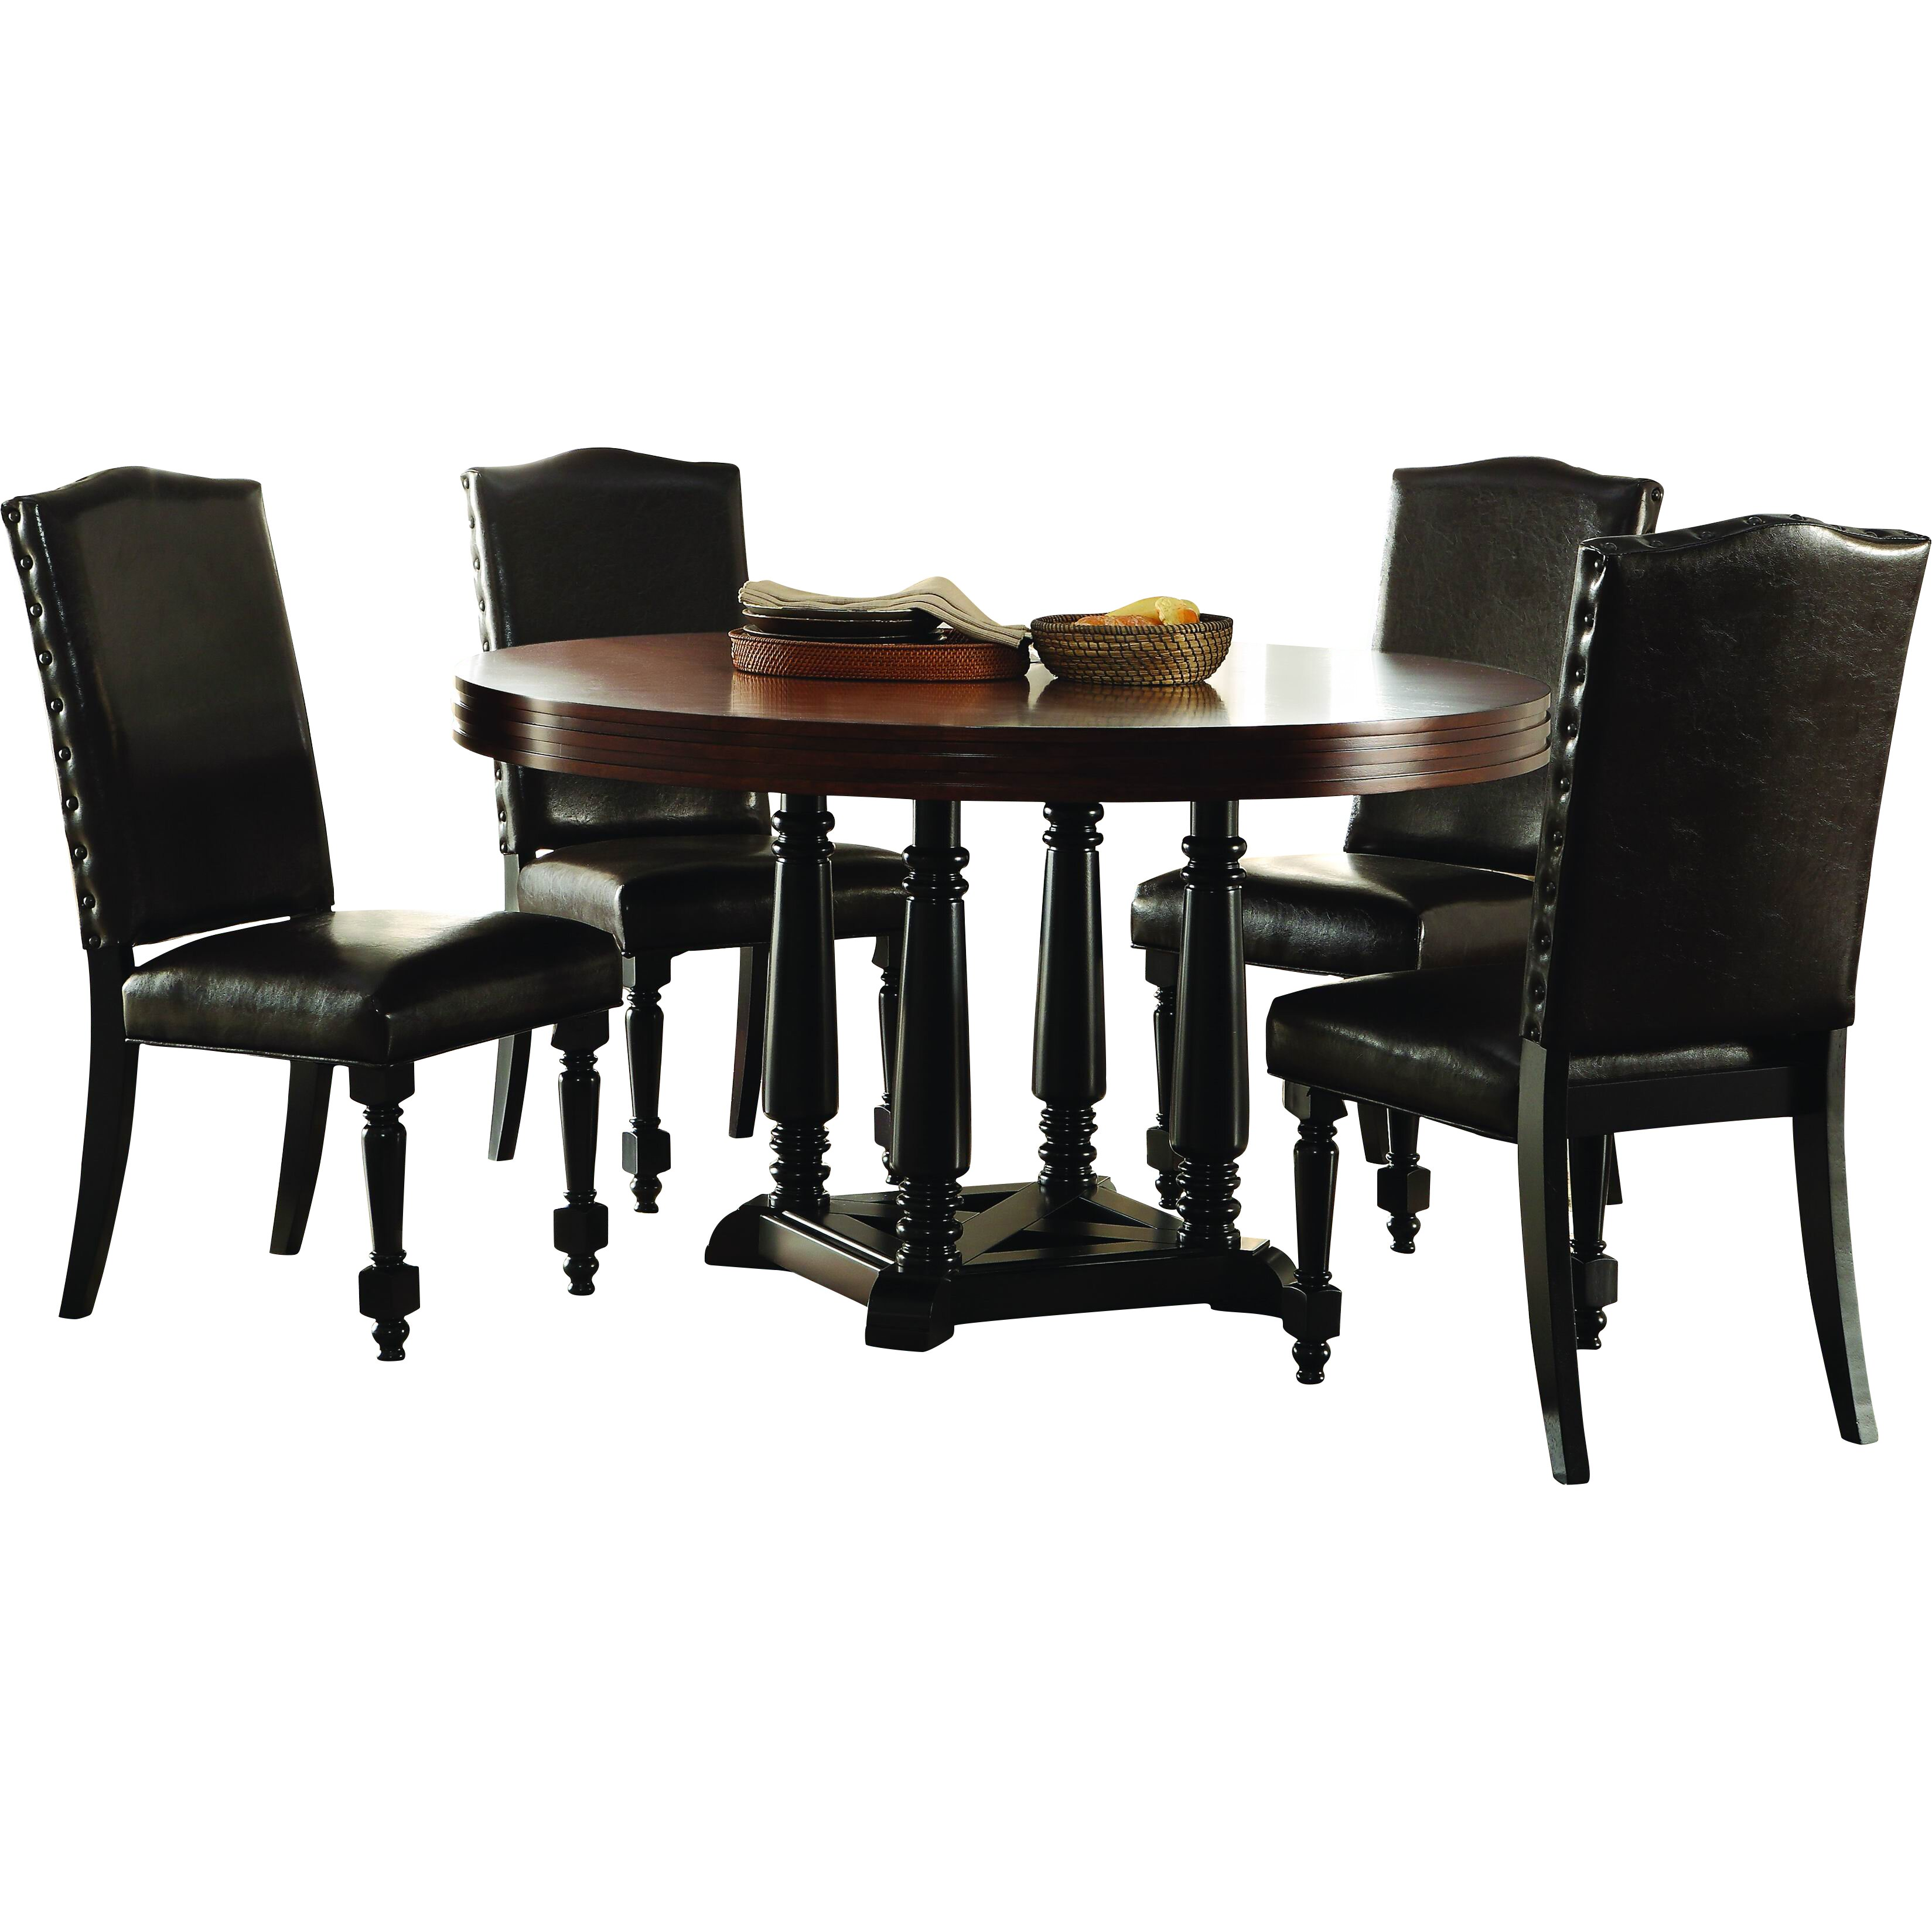 Homelegance 5 Dining Set 187 Homelegance Hahn 5 Marble Top  :  from 45.77.210.35 size 3298 x 3298 jpeg 668kB